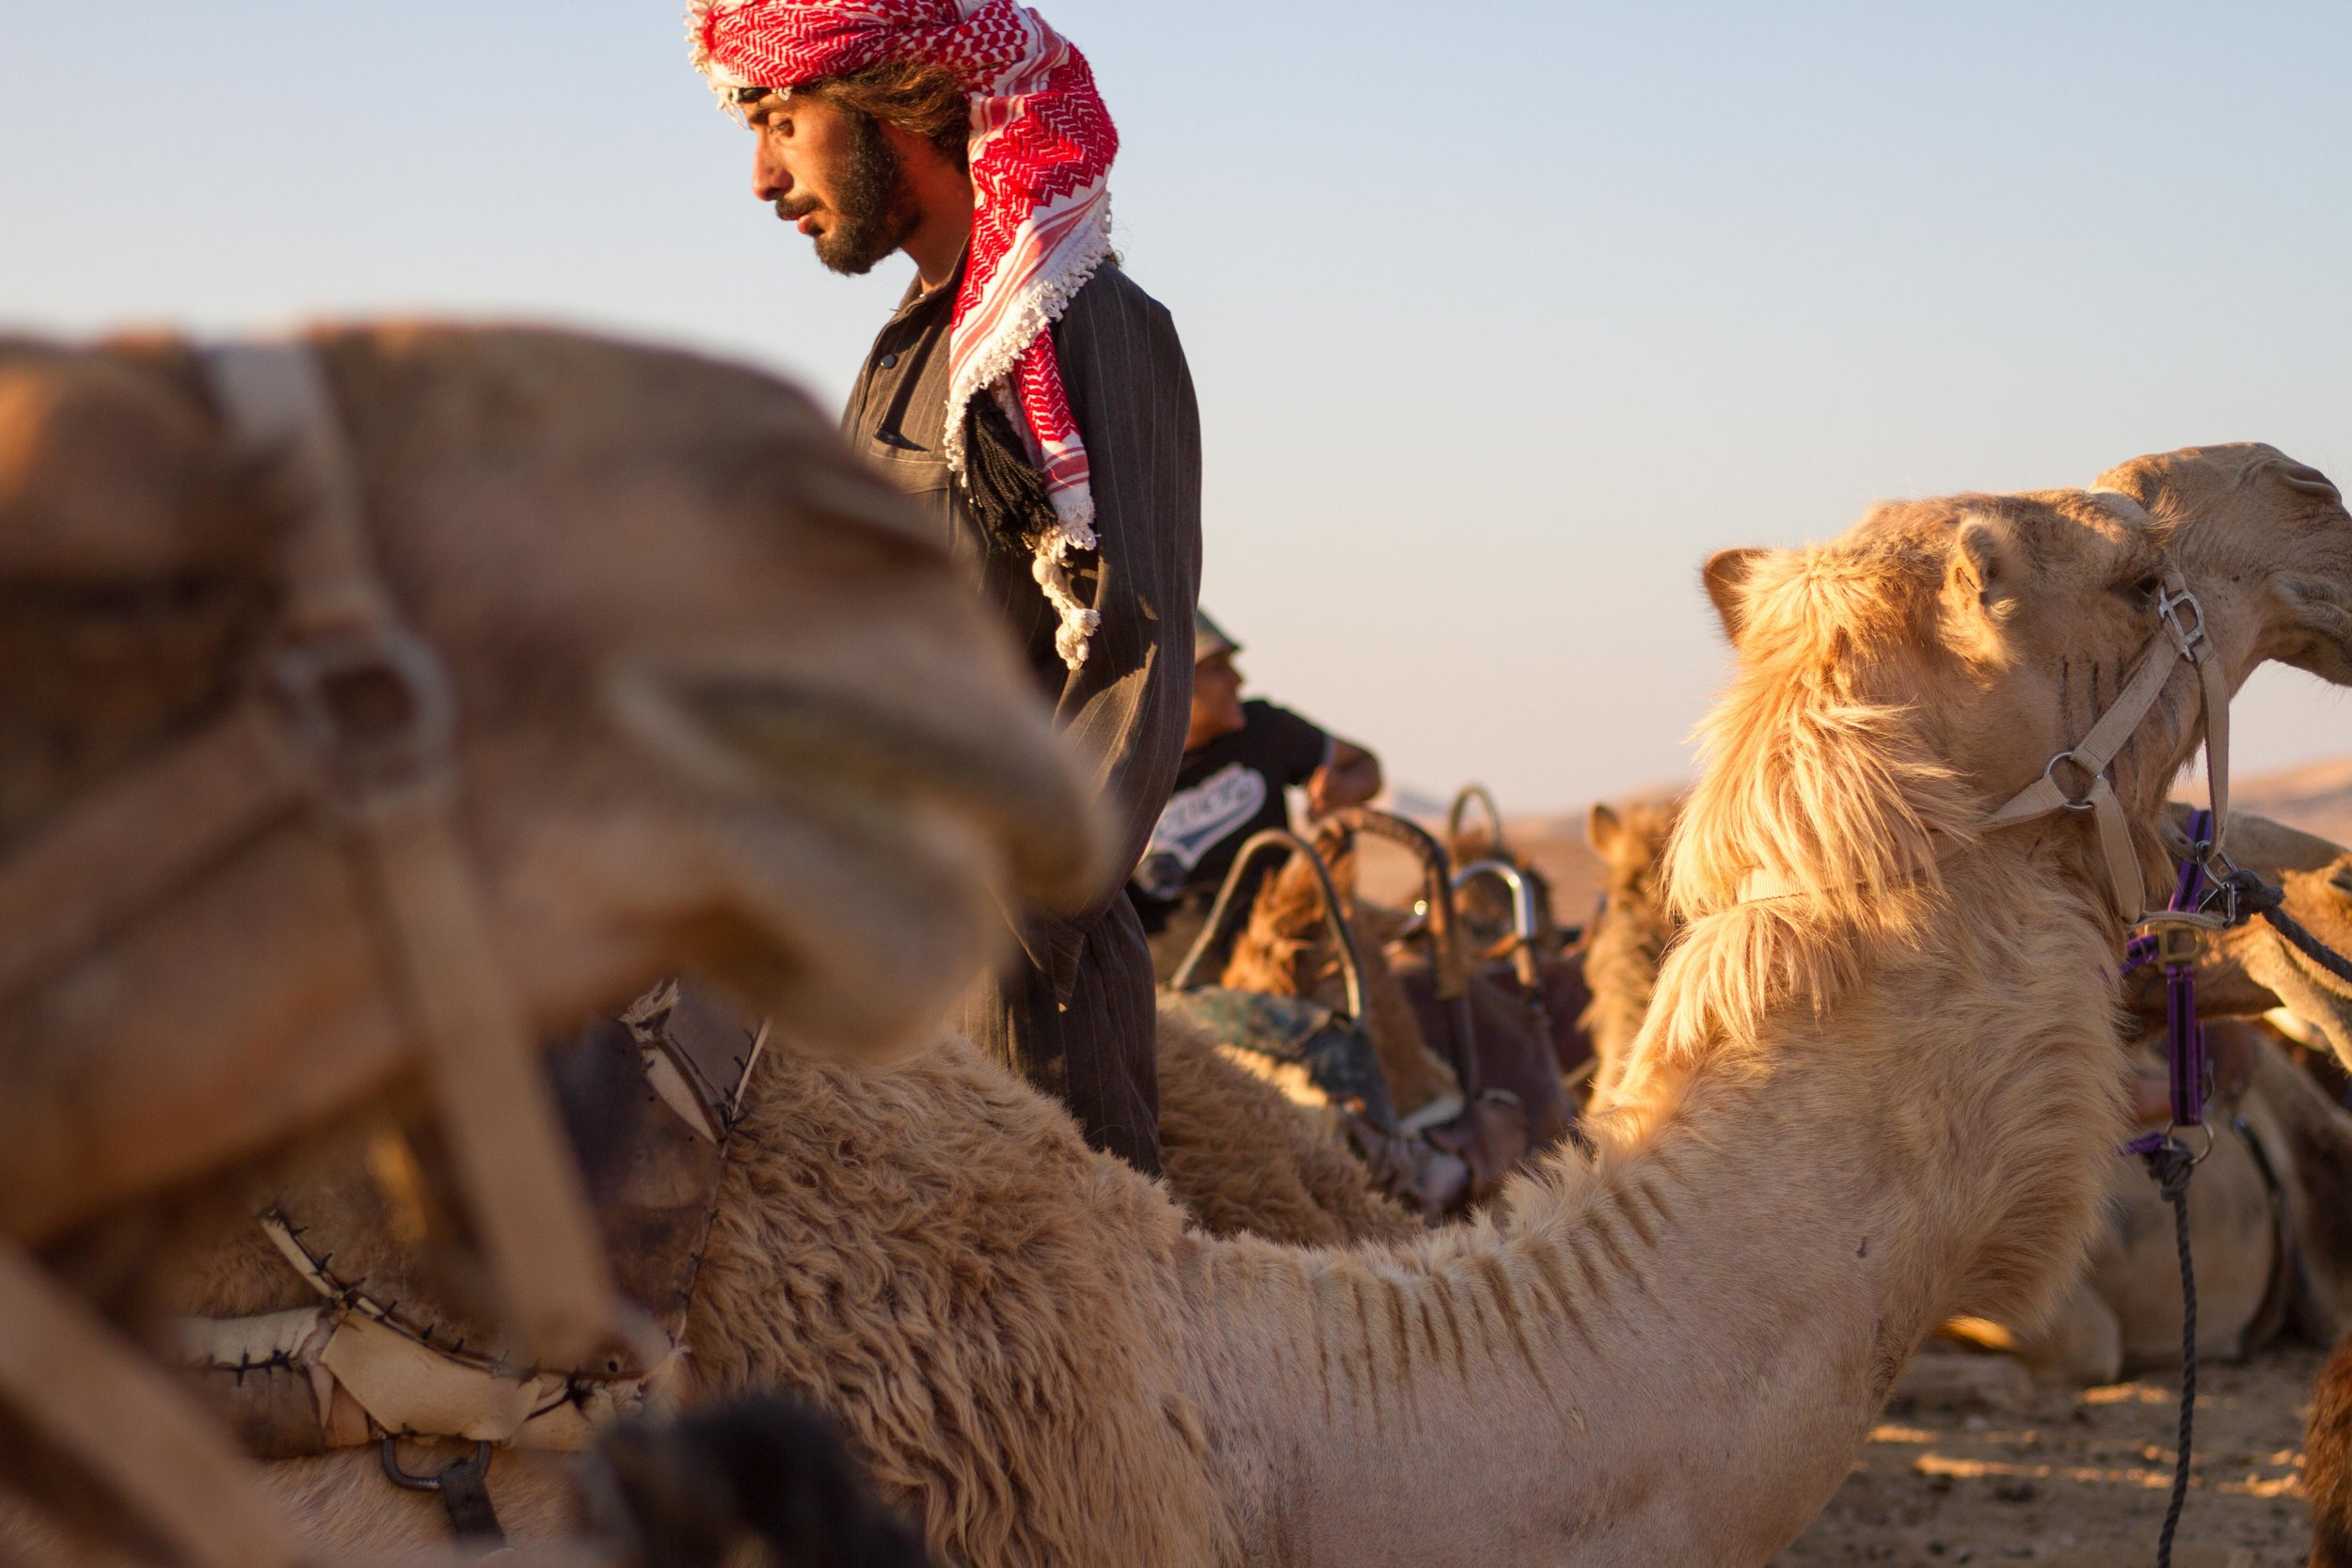 A member of a Bedouin tribe tends to his camels in the Negev desert in Israel.